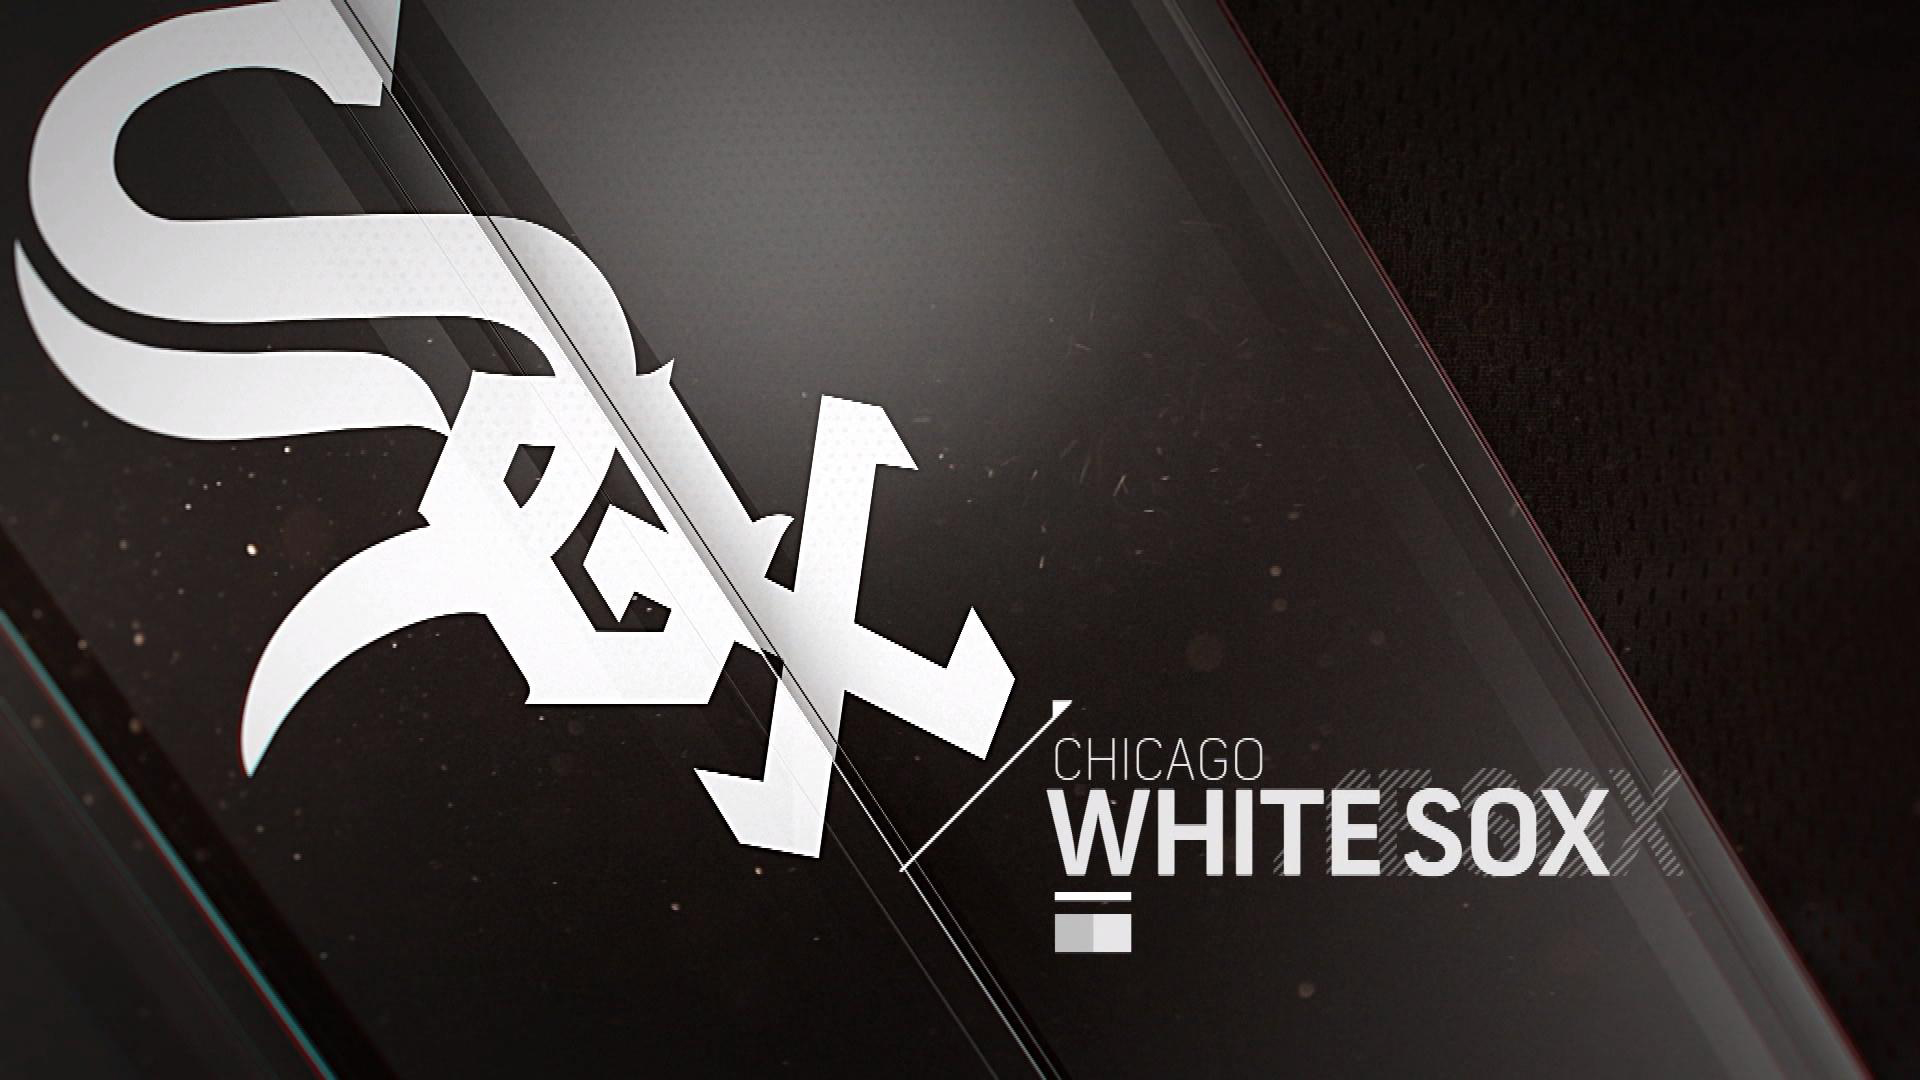 White Sox Wallpaper White Sox Wallpapers s